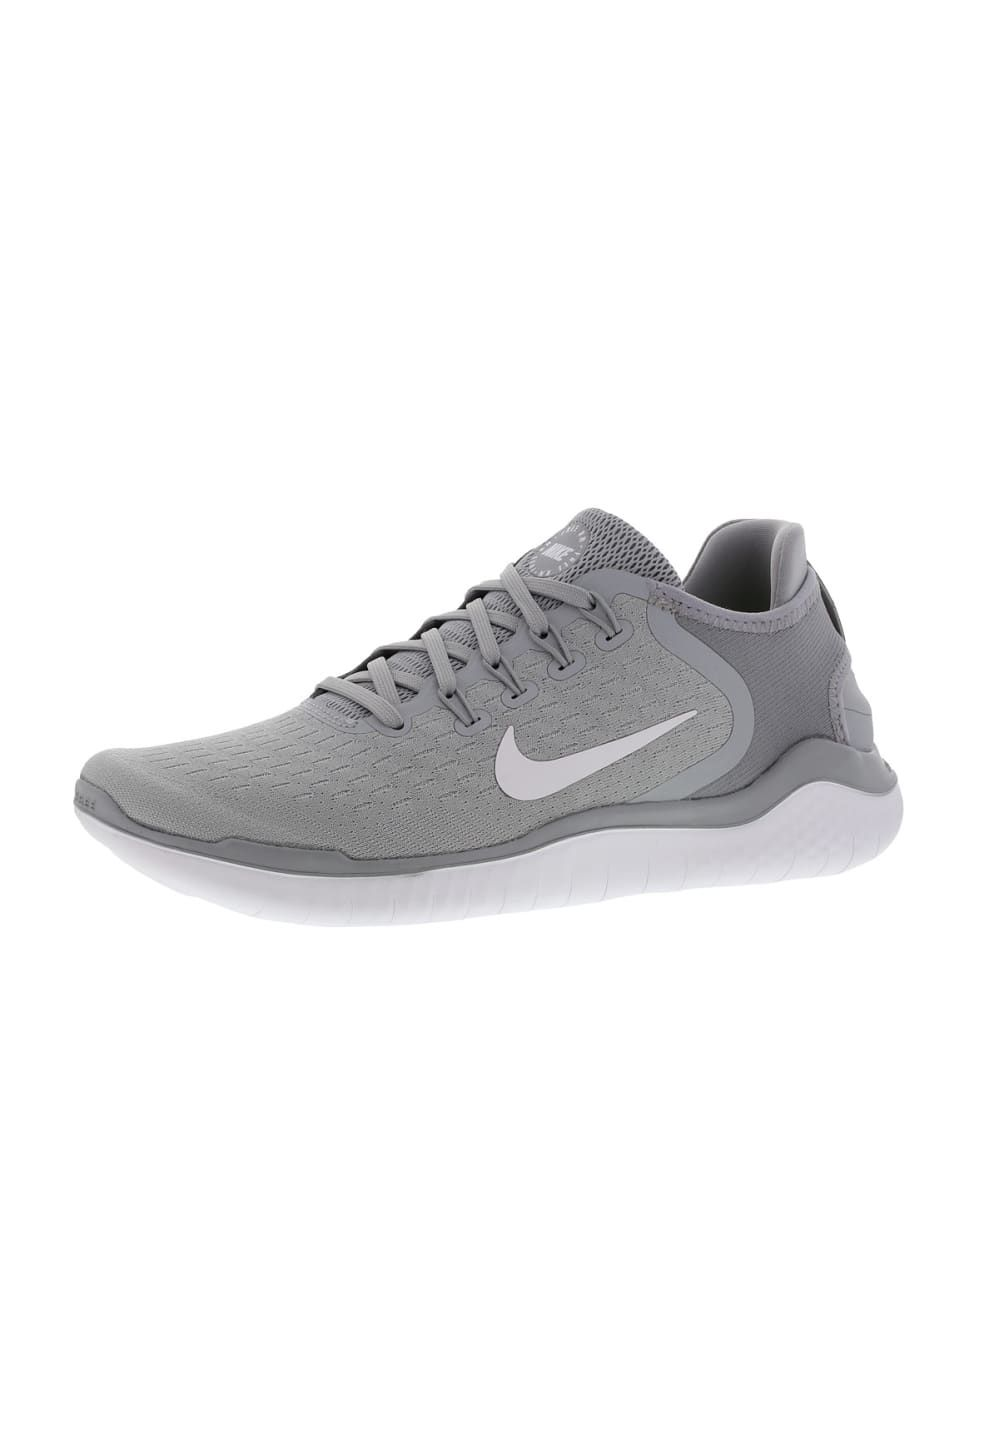 low priced 397ef ebc08 Nike Free RN 2018 - Chaussures running pour Femme - Gris